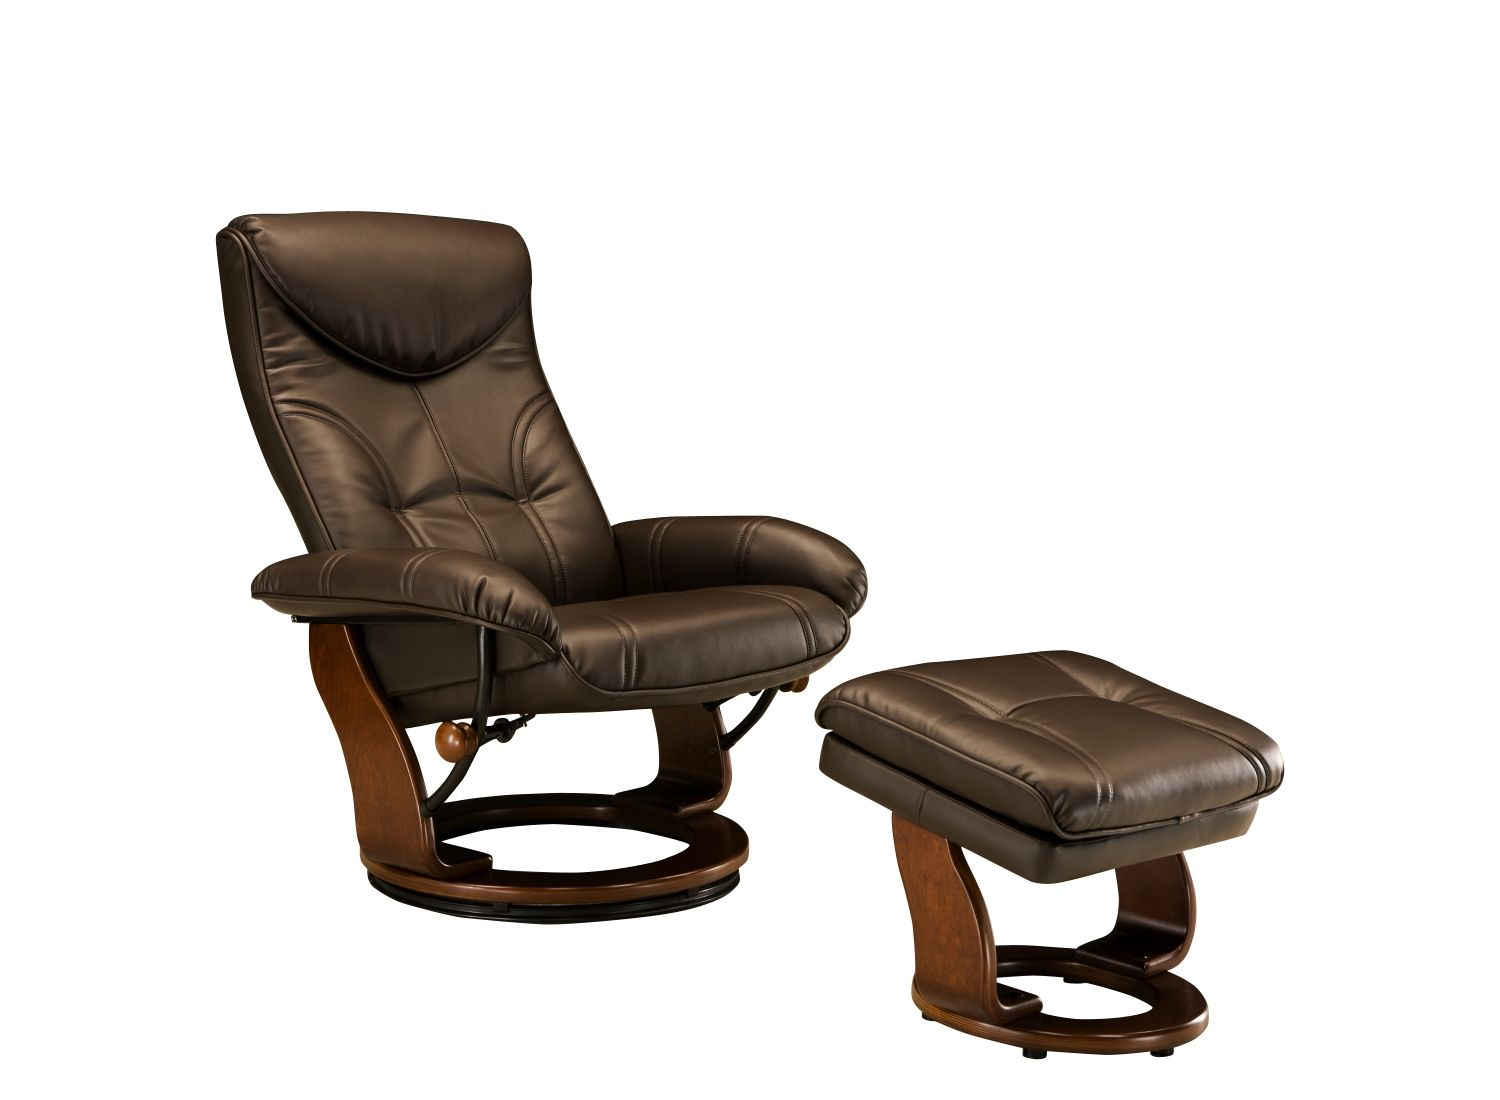 This Clinton leather reclining chair and storage ottoman will add a little comfort and luxury to your living room.